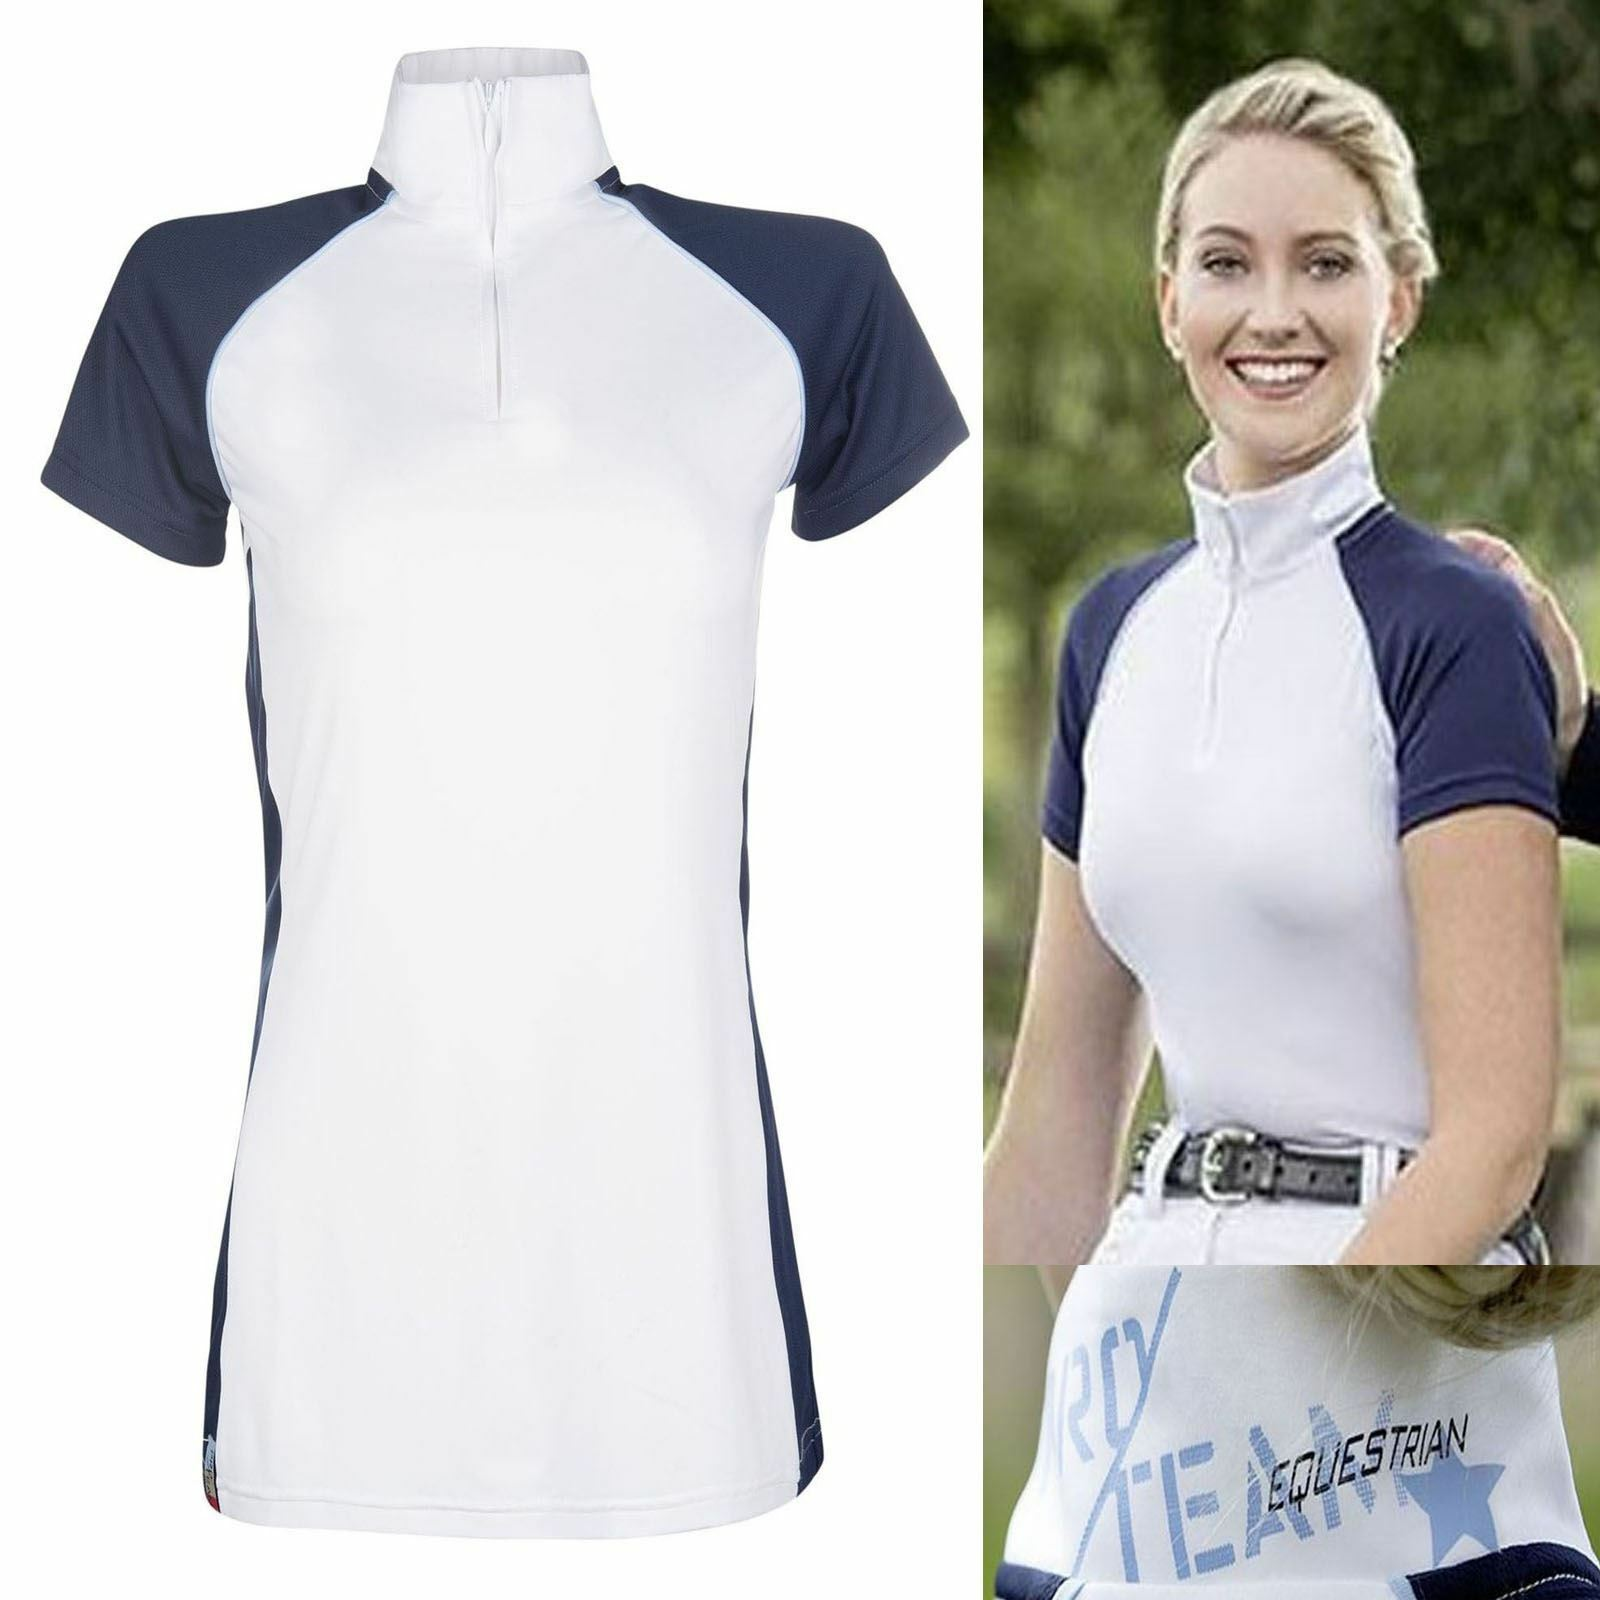 HKM Pro Team County Competition Shirt - Horse Riding Resistant Stretch Tailored